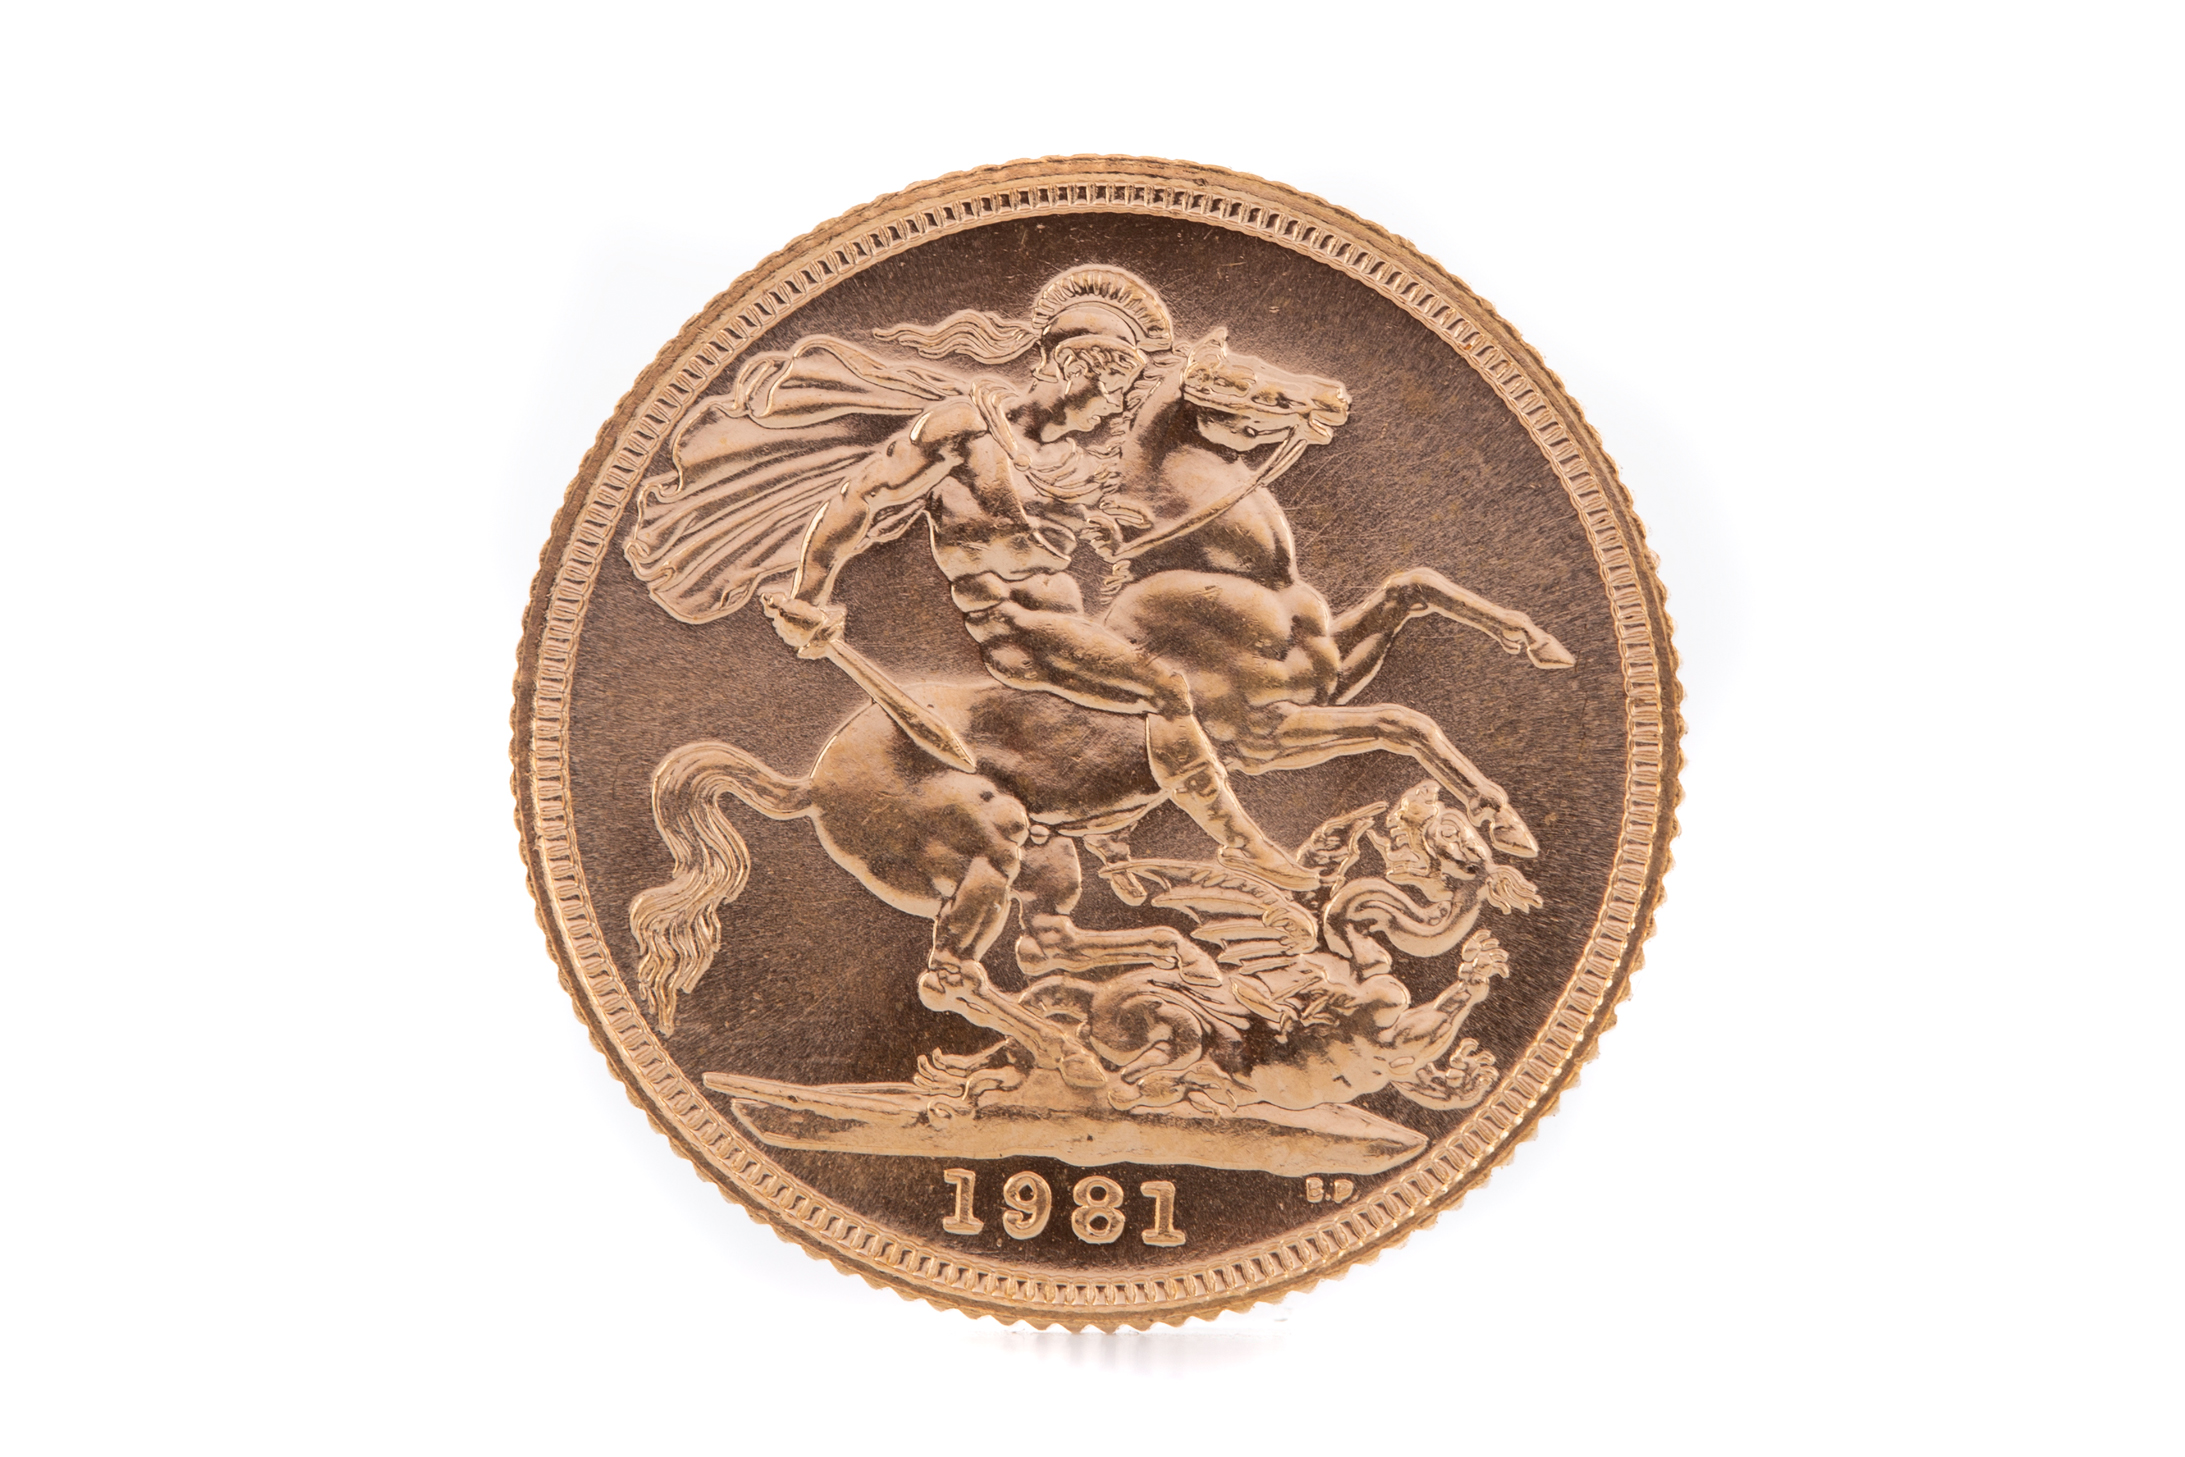 AN ELIZABETH II GOLD SOVEREIGN DATED 1981